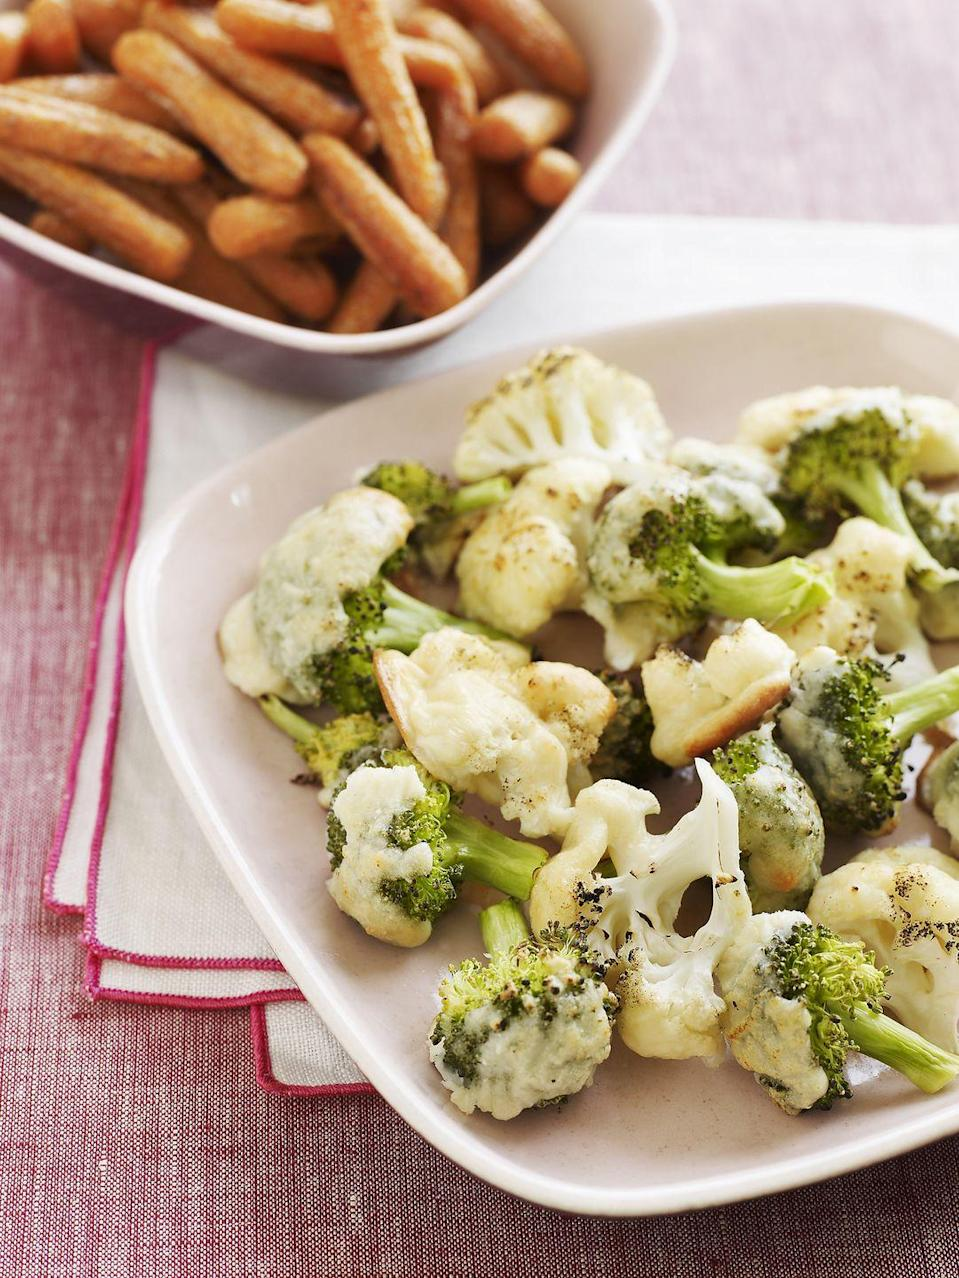 <p>Broccoli, cauliflower and Brussels sprouts are packed with antioxidants. They're also rich in choline, which works with the bacteria in your gastrointestinal tract.</p>